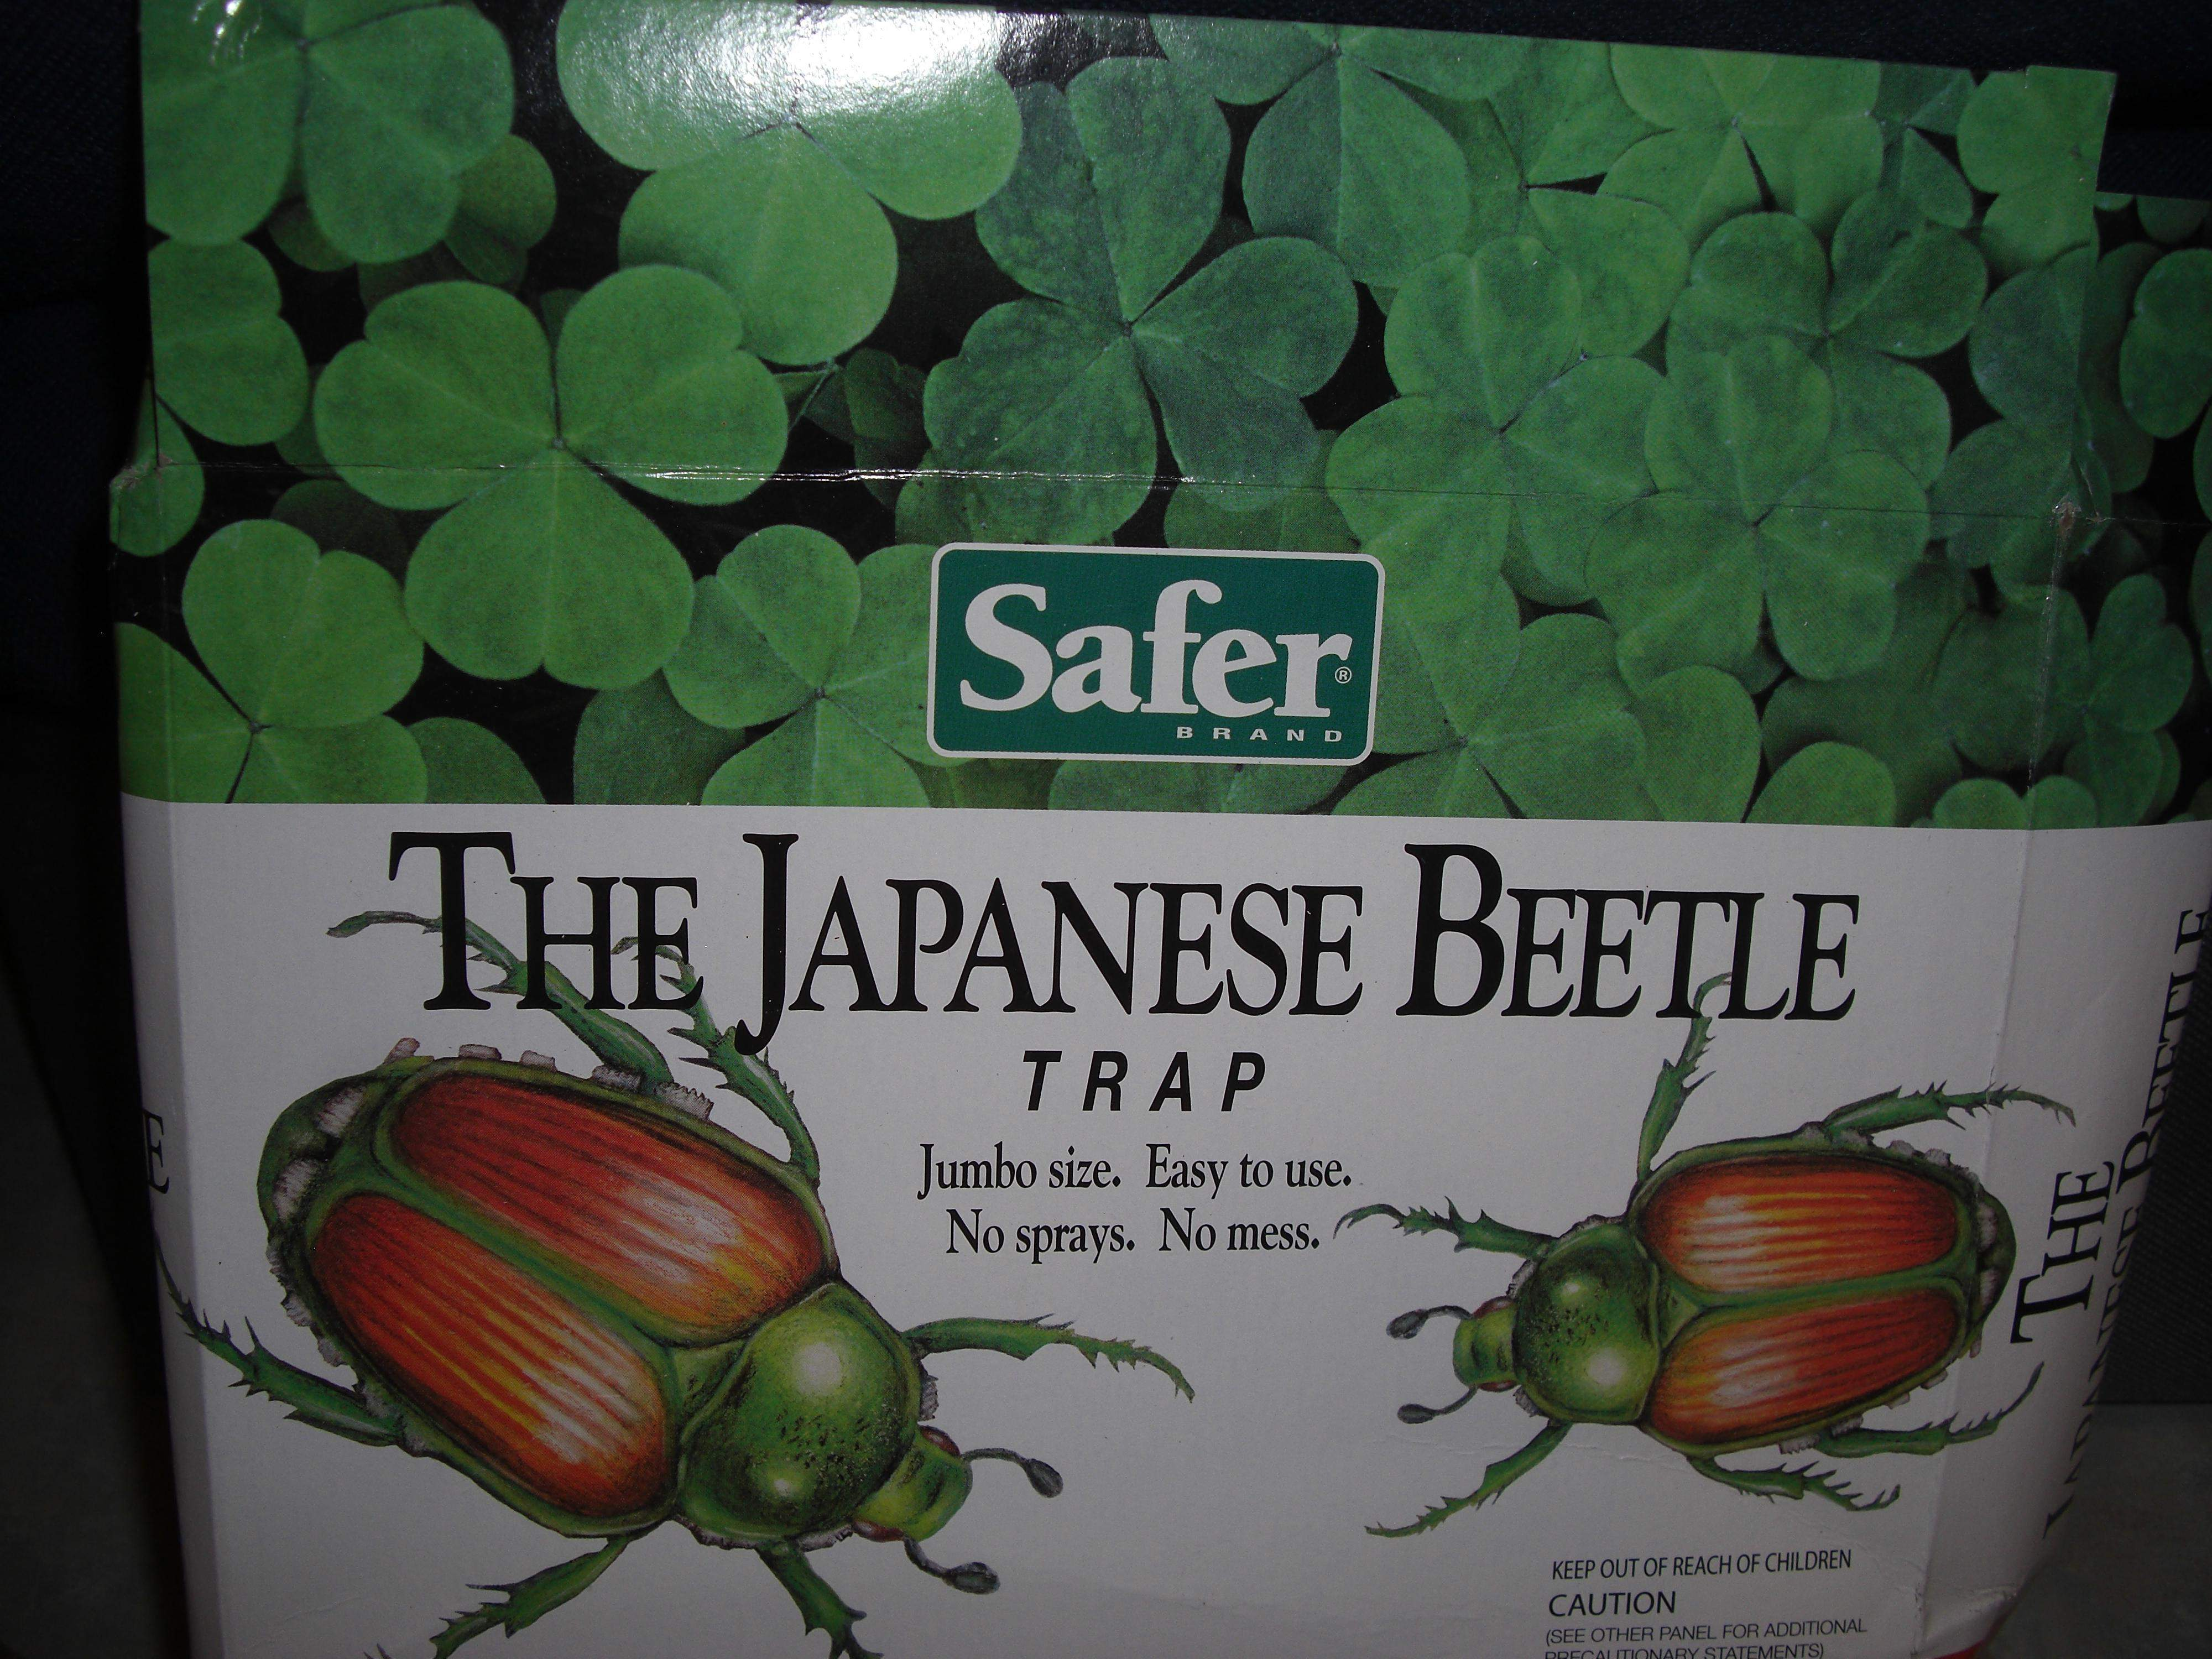 Time to bring the Japanese Beetle traps inside